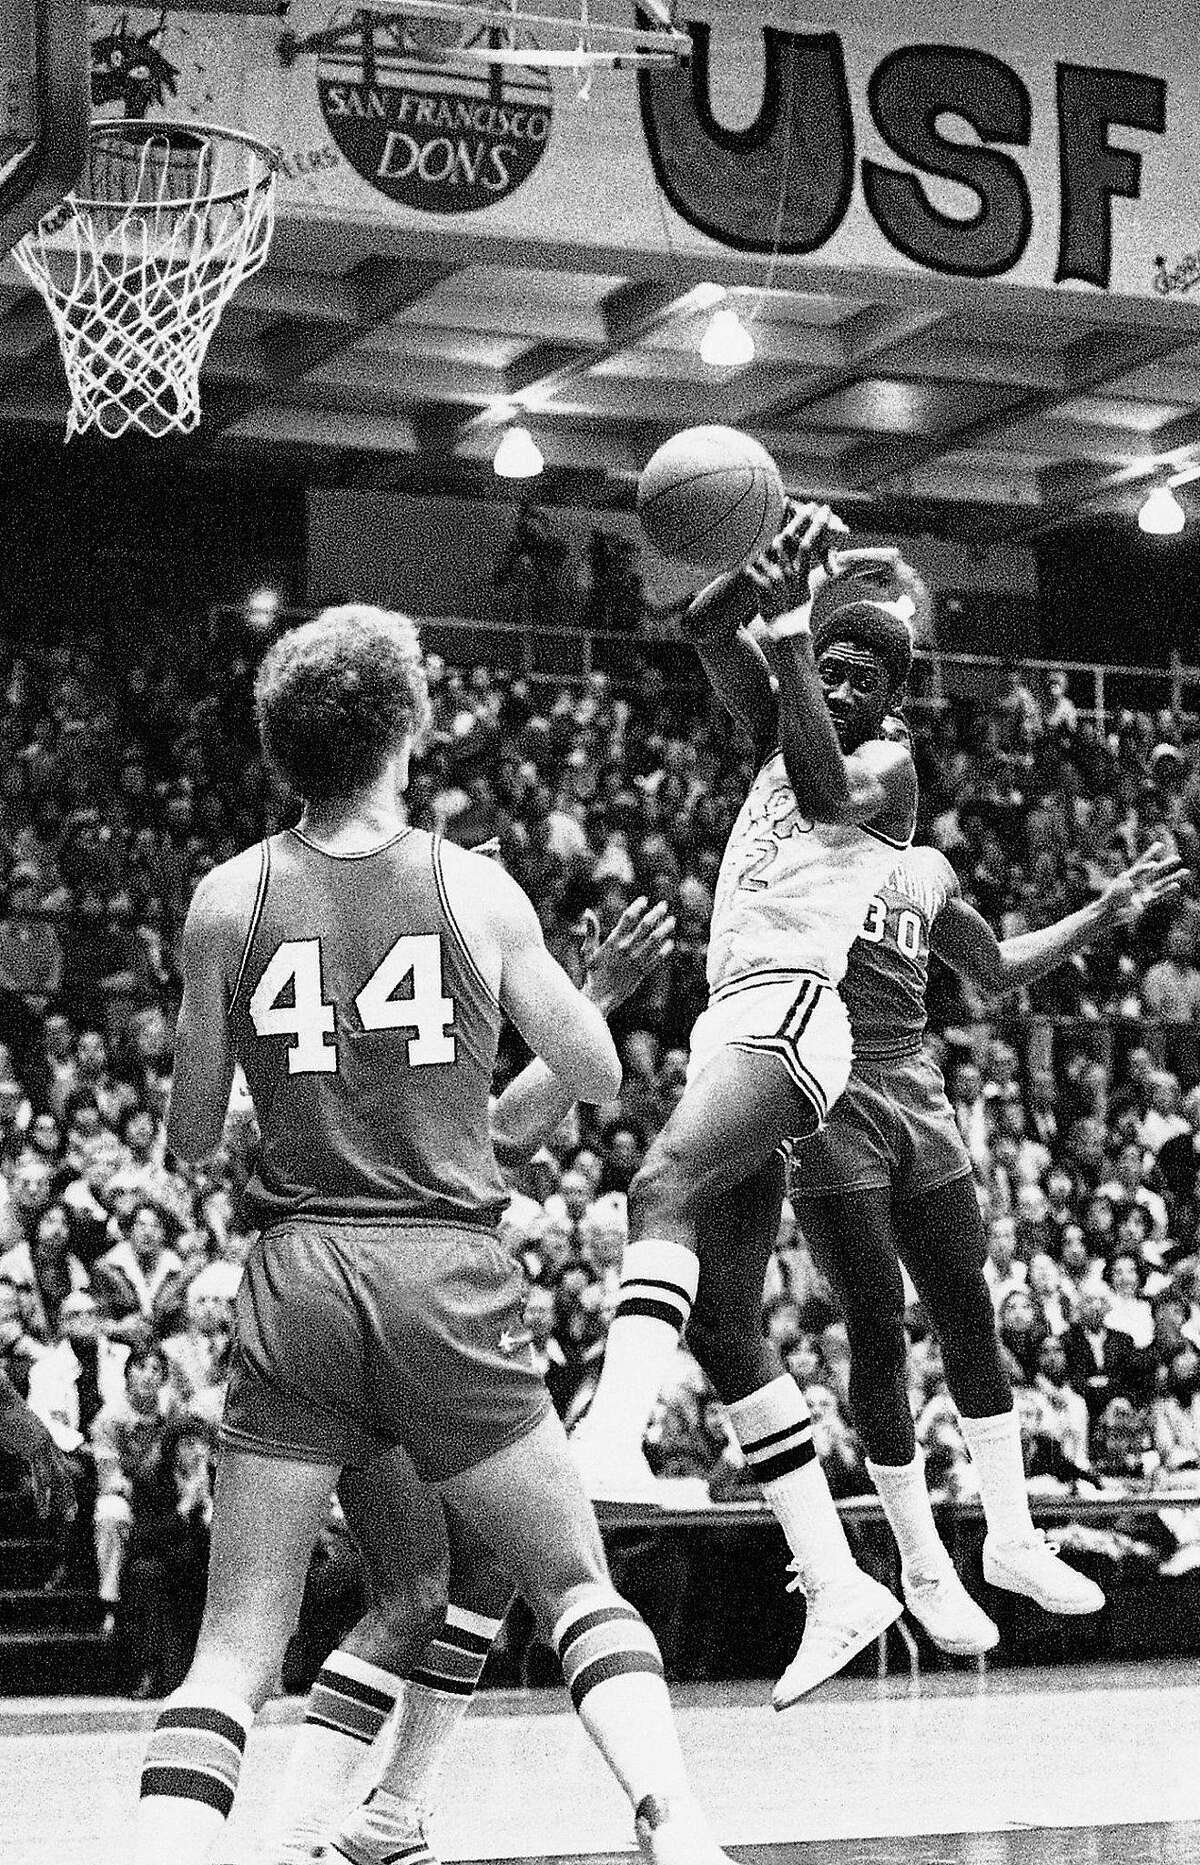 James Hardy (center) averaged 13.4 points and 9.7 rebounds per game in three seasons with USF and played in the NBA.